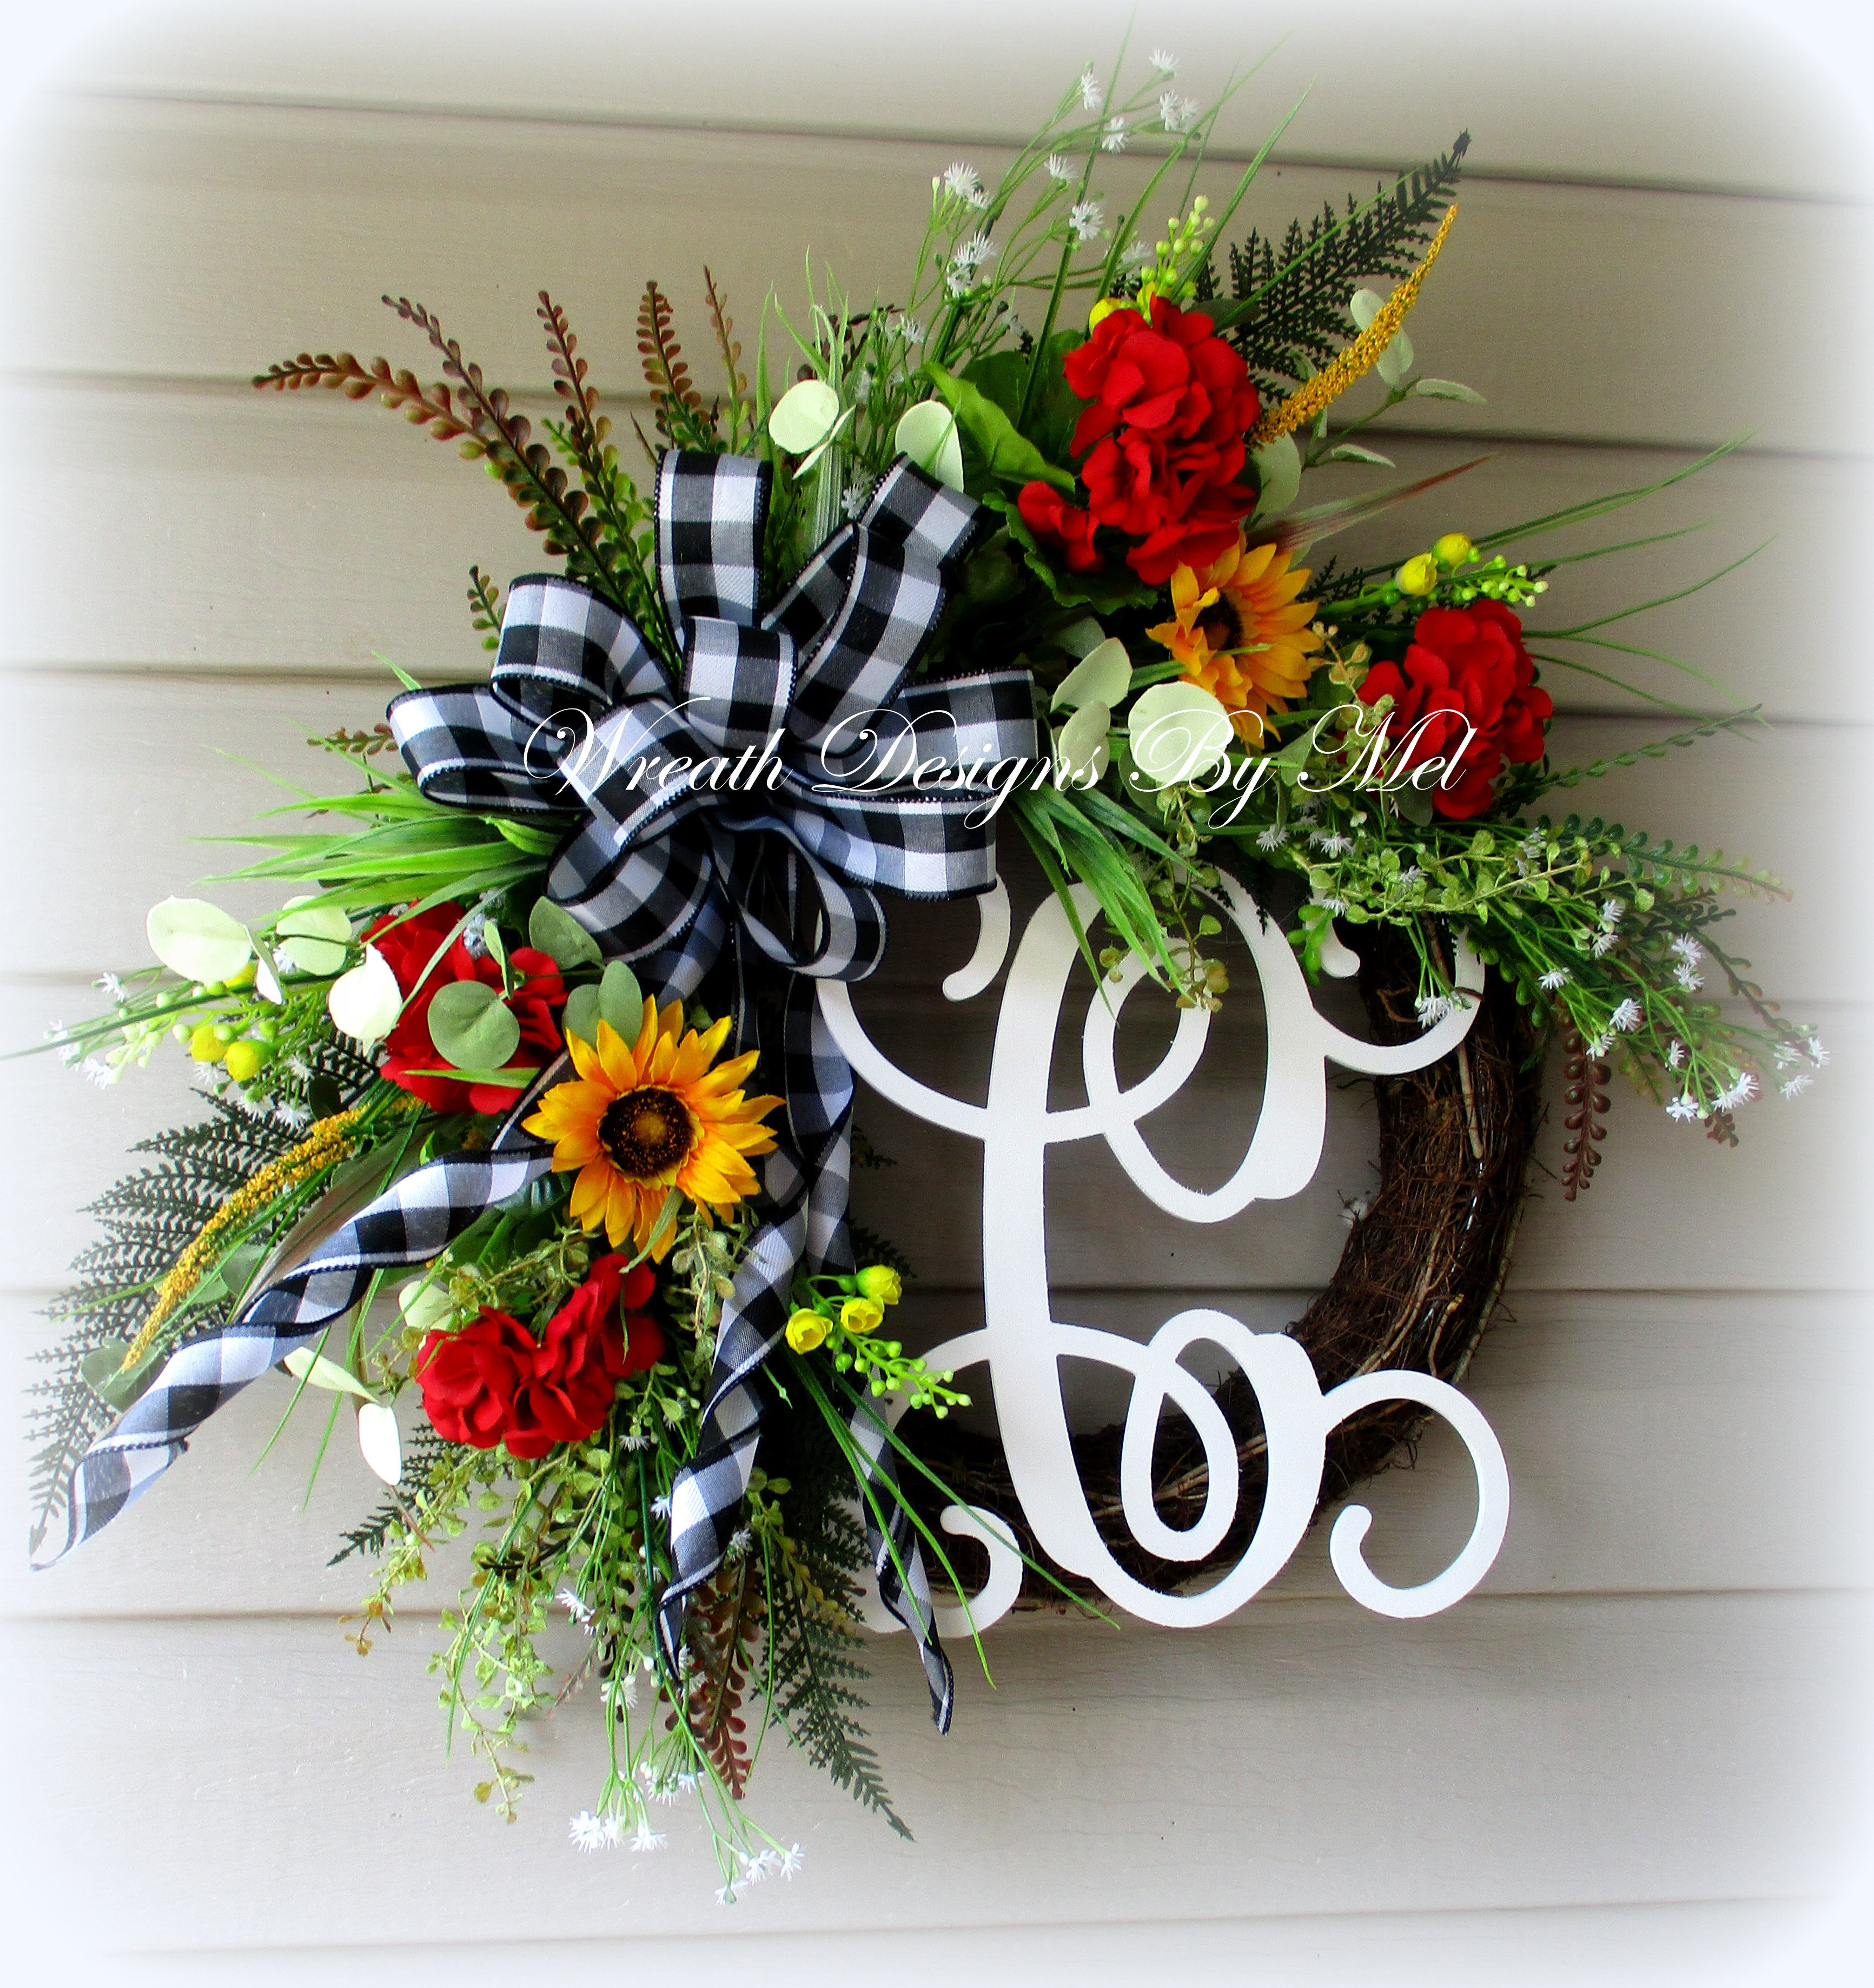 24 Colorful Geranium And Sunflower Wreath Initial Wreathdesignsandmore